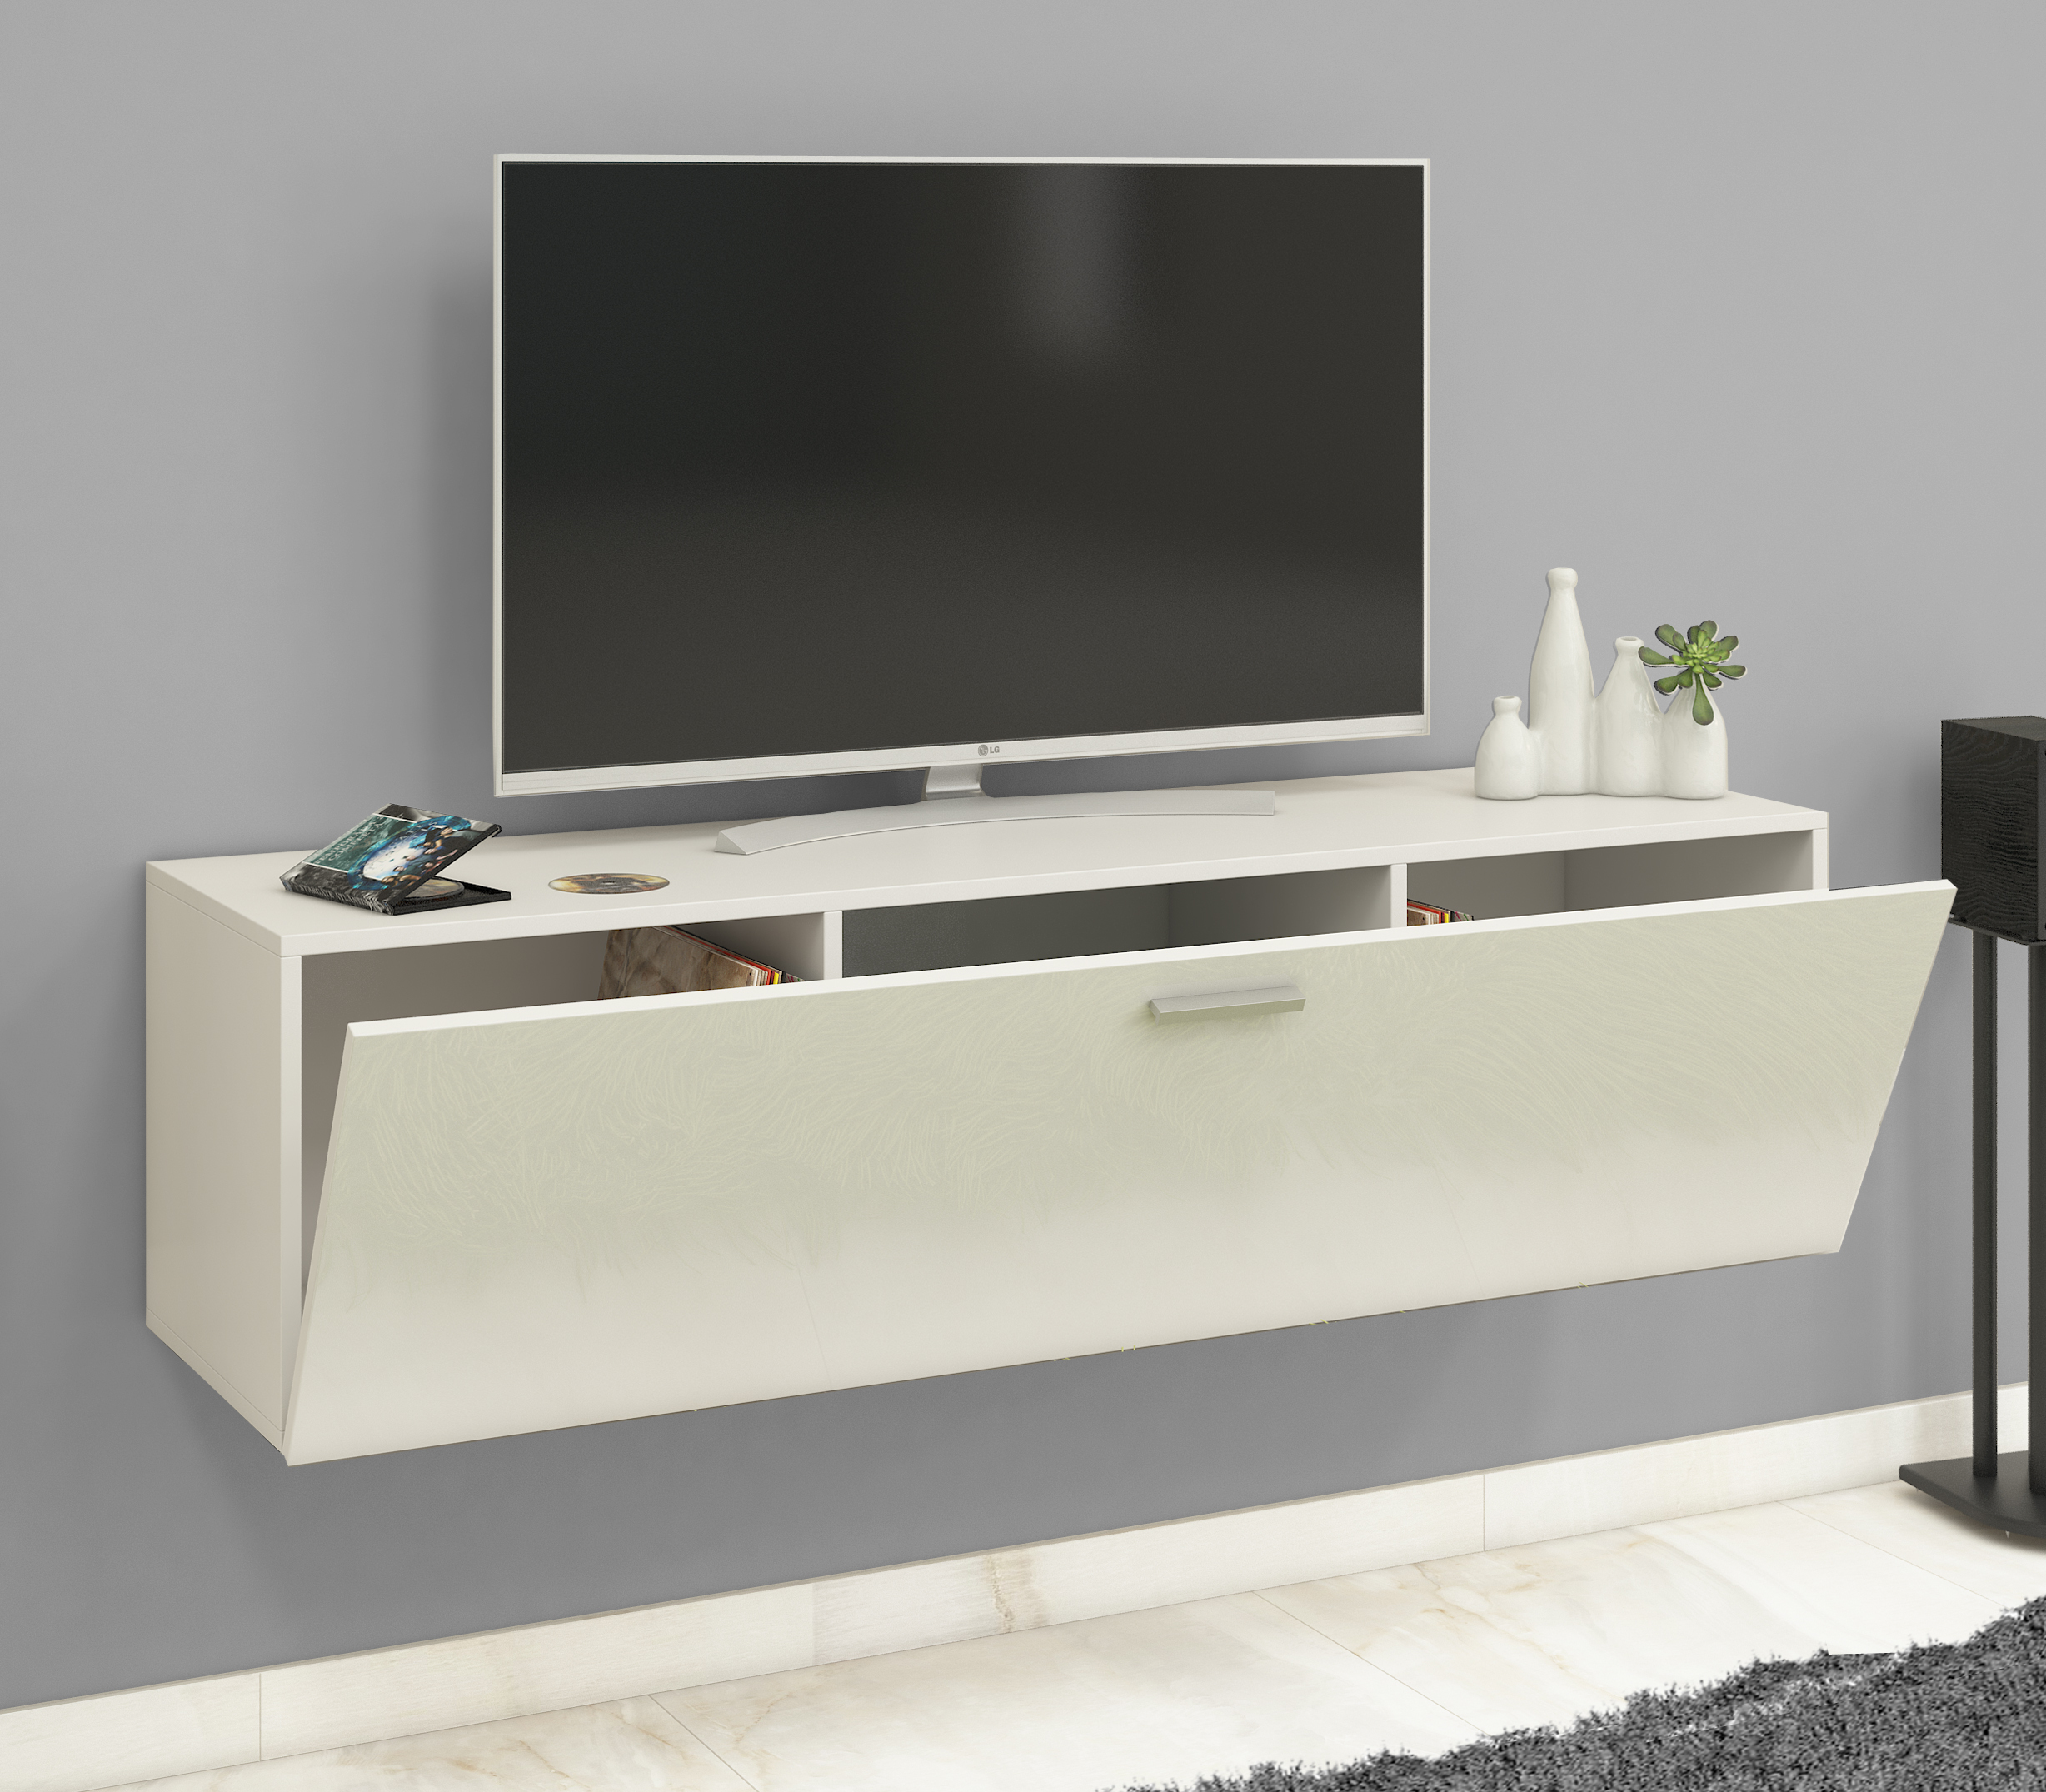 vcm group vcm tv wand board fernsehtisch lowboard. Black Bedroom Furniture Sets. Home Design Ideas